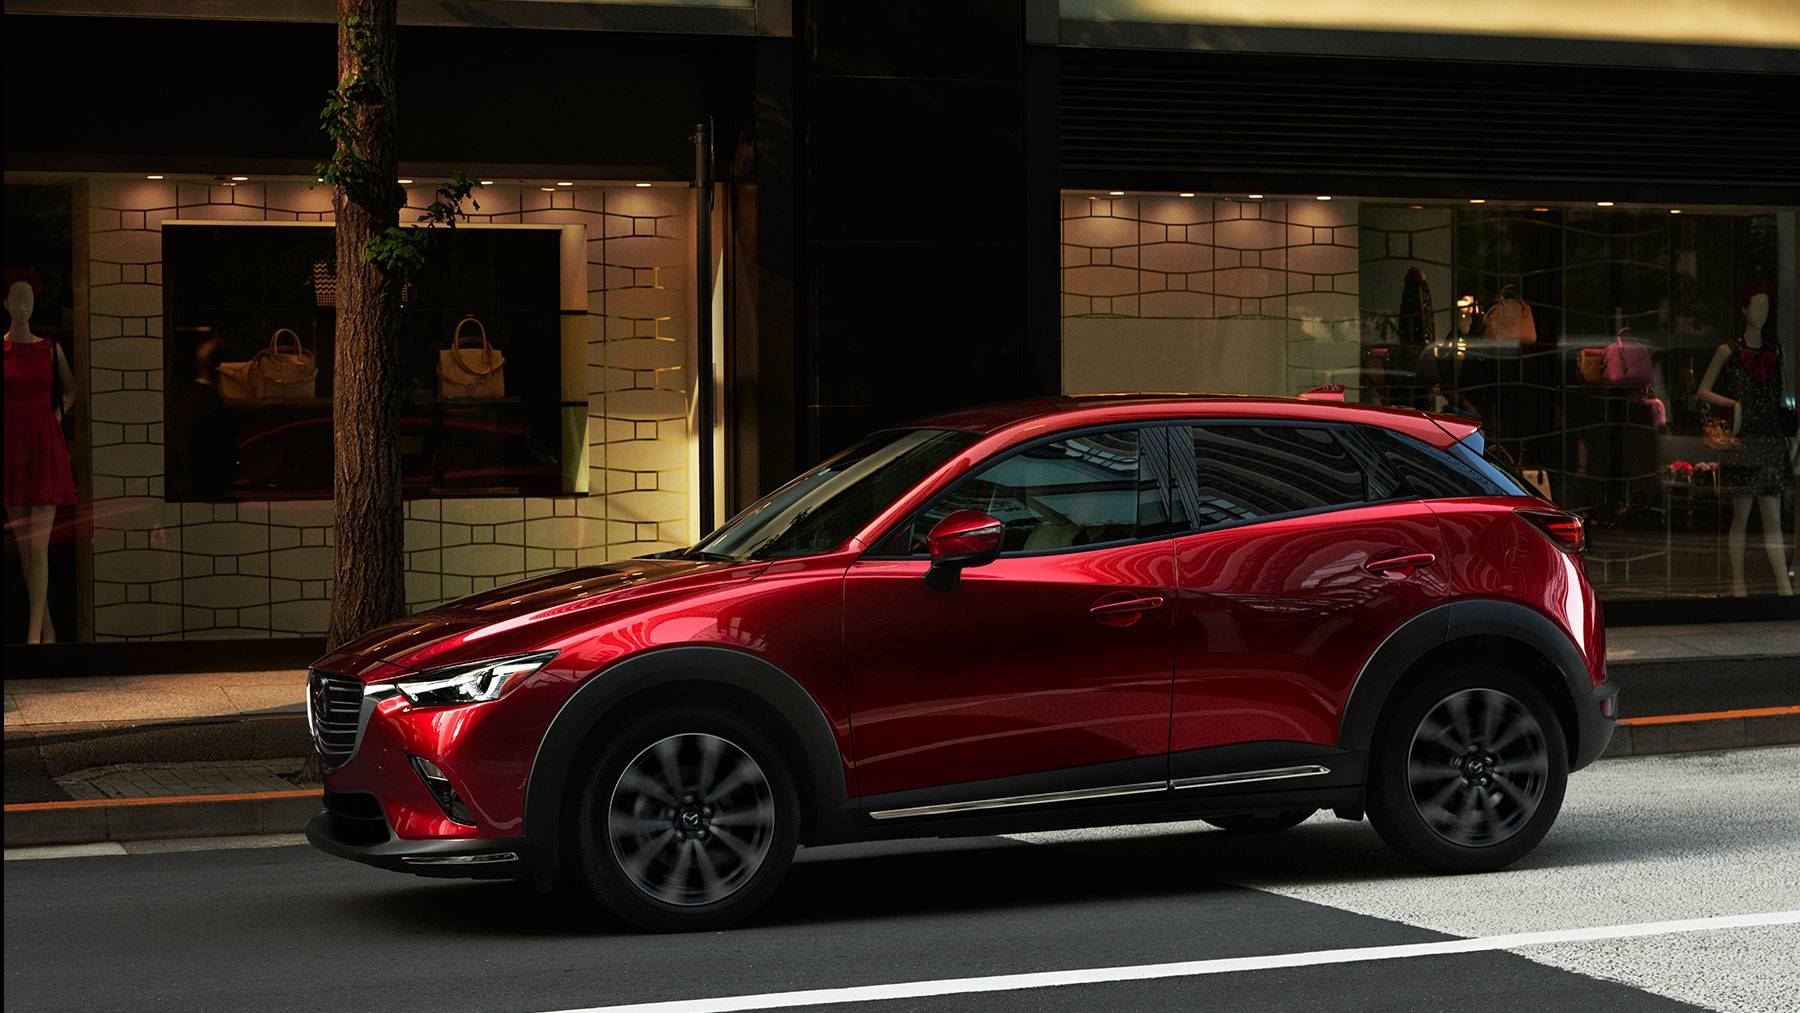 2019 Mazda CX-3 Leasing near Cibolo, TX